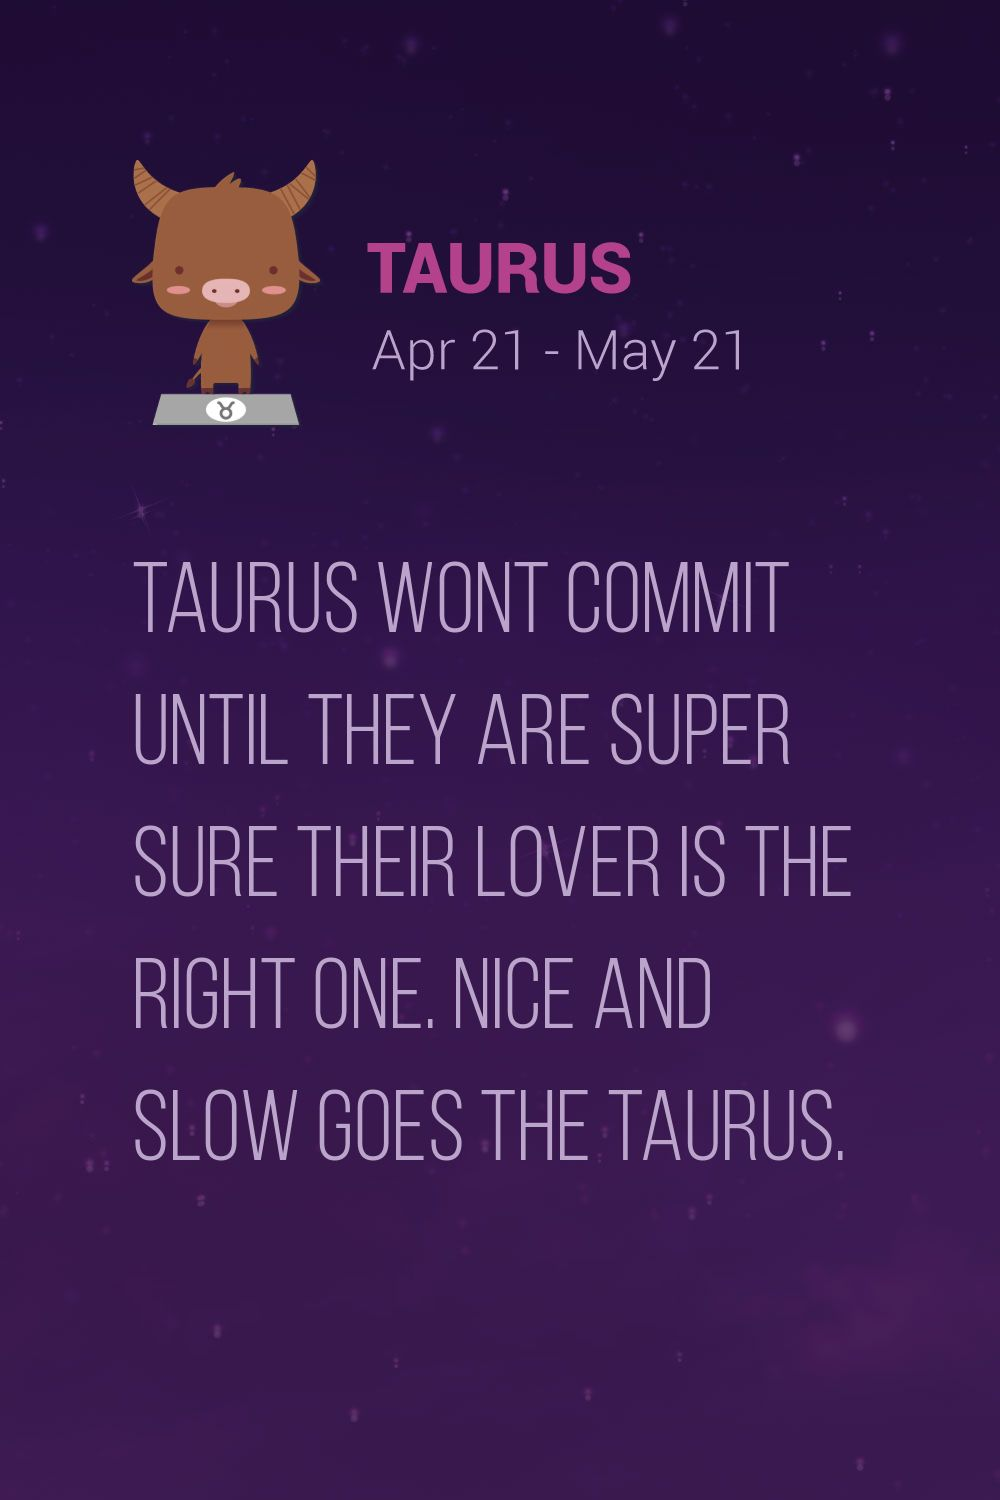 Taurus wont commit until they are super sure their lover is